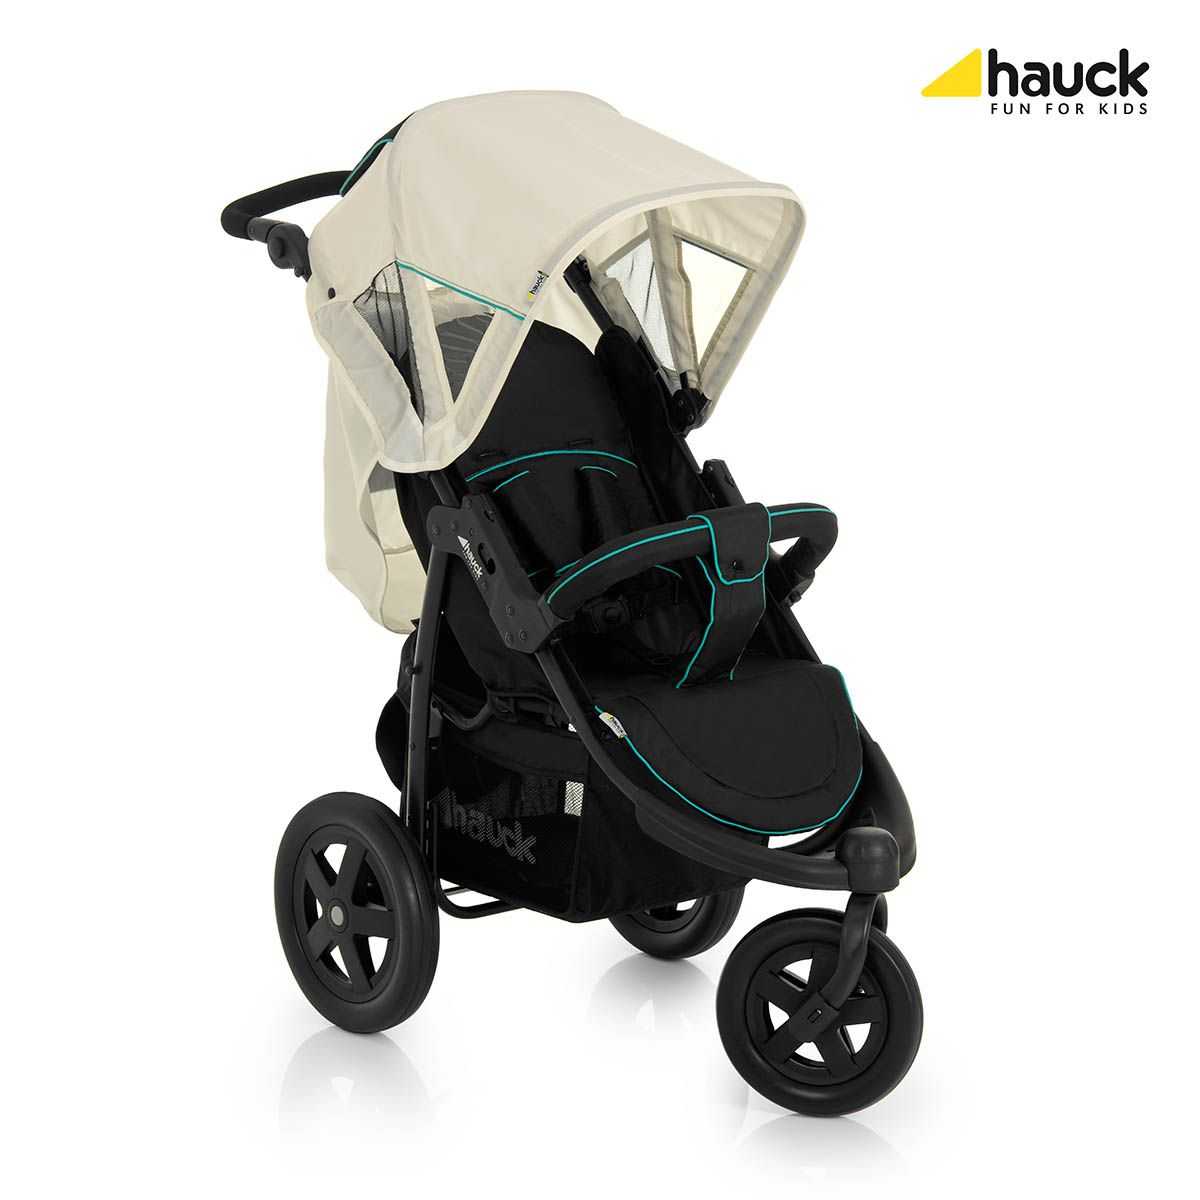 Joie Nitro Babyone Pin Von Hauck Fun For Kids Auf 3 Wheel Strollers